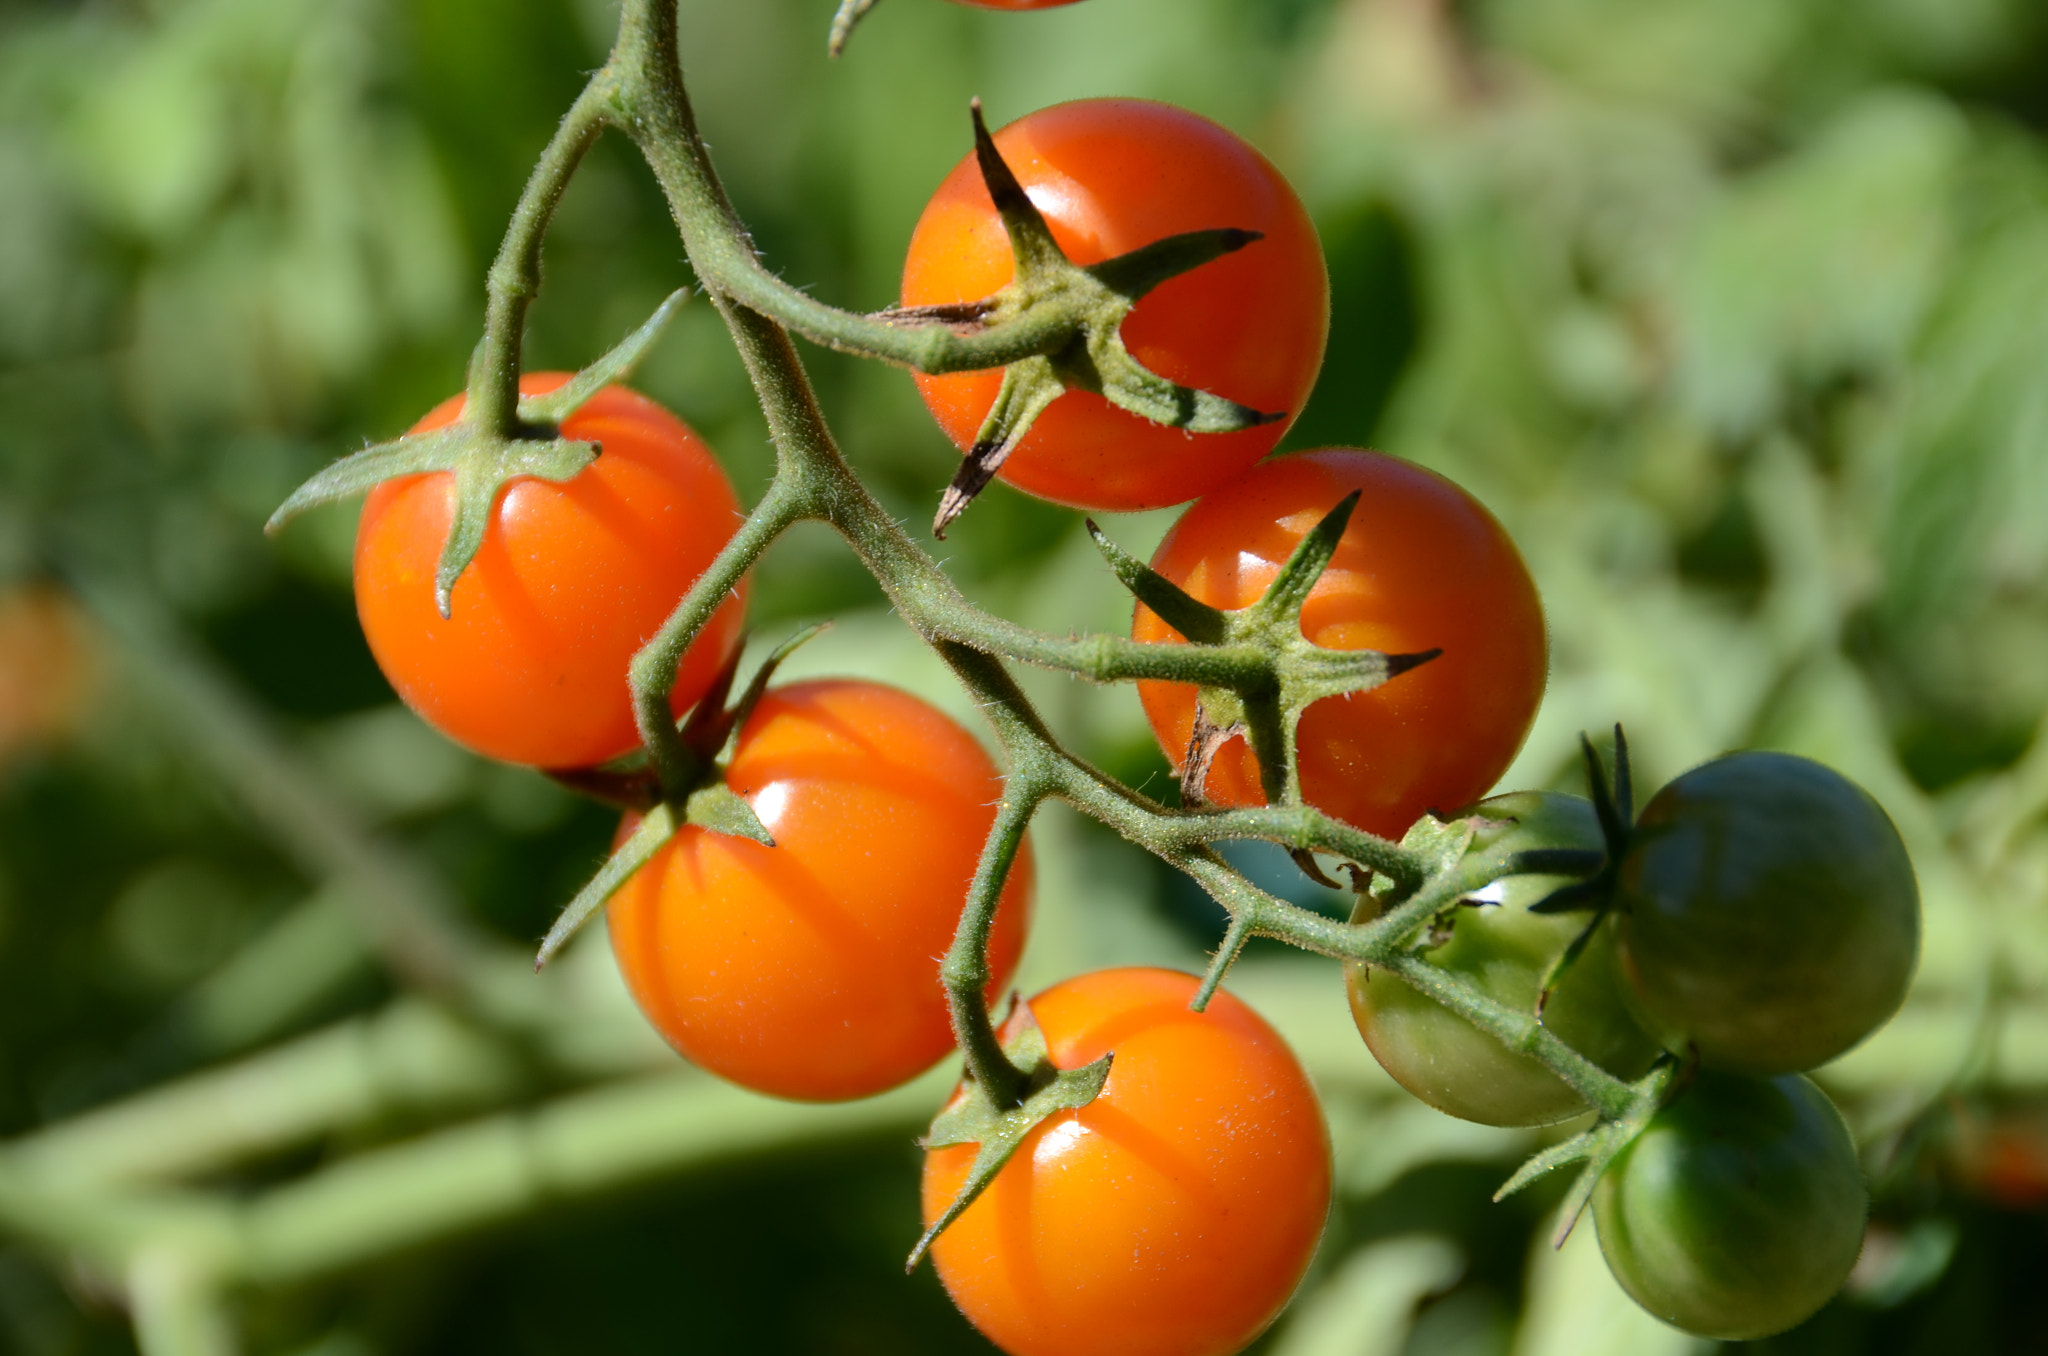 File:Cherry Tomatoes From The Garden (120856447).jpeg - Wikimedia Commons